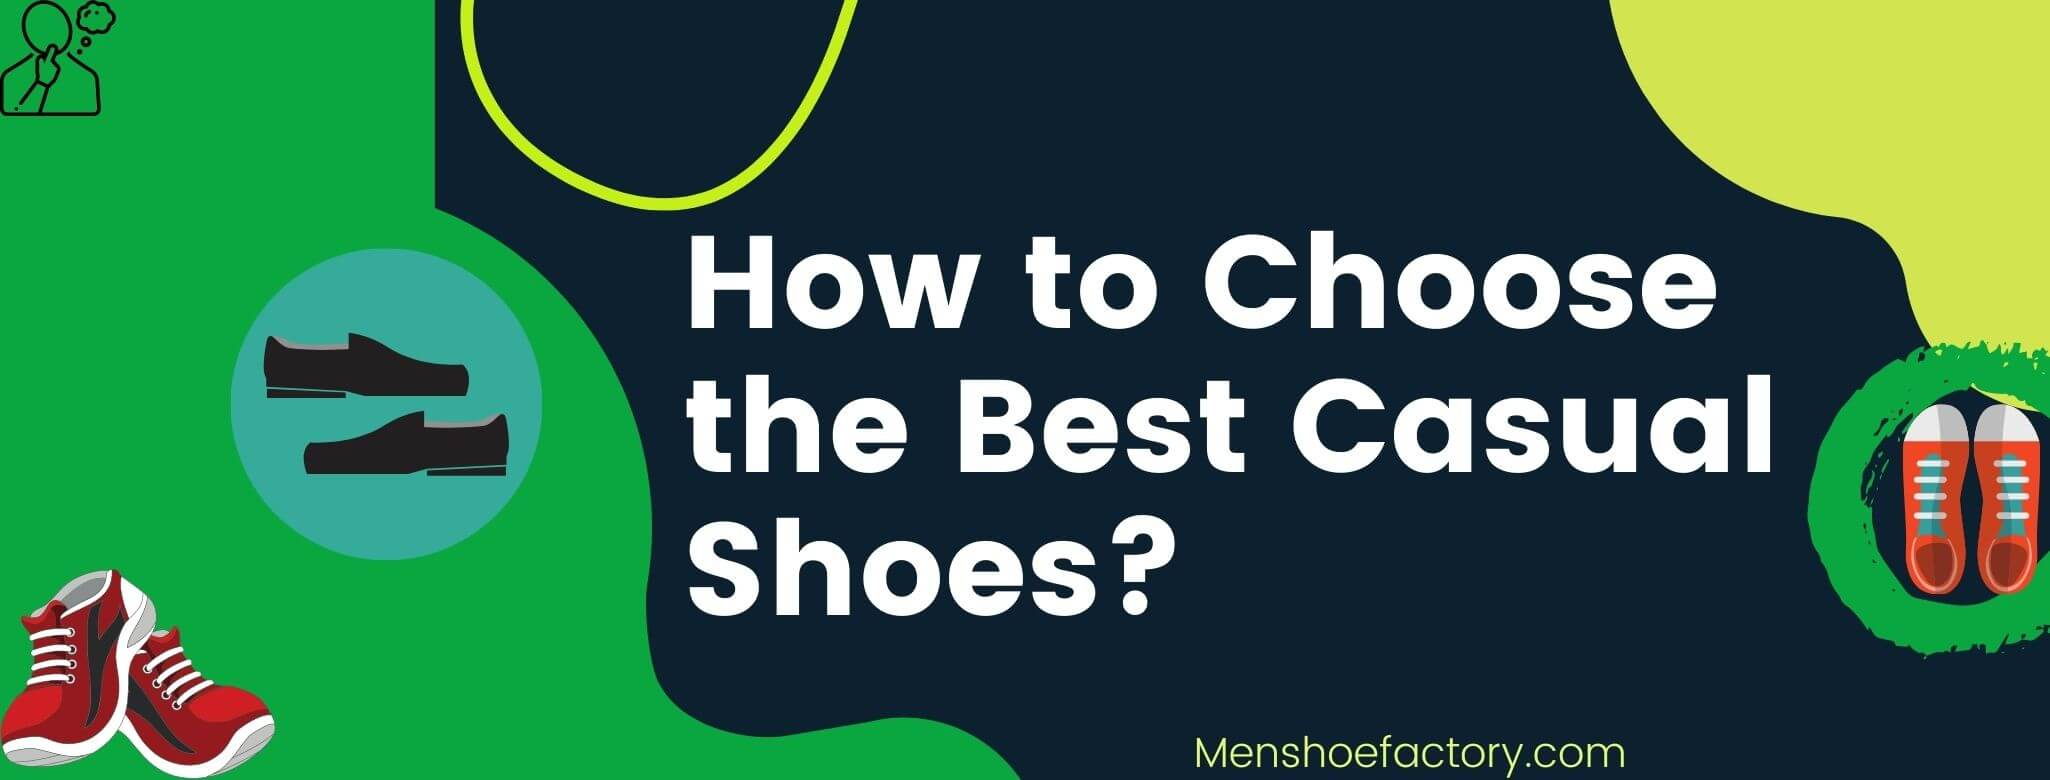 How to Choose the Best Casual Shoes for Men